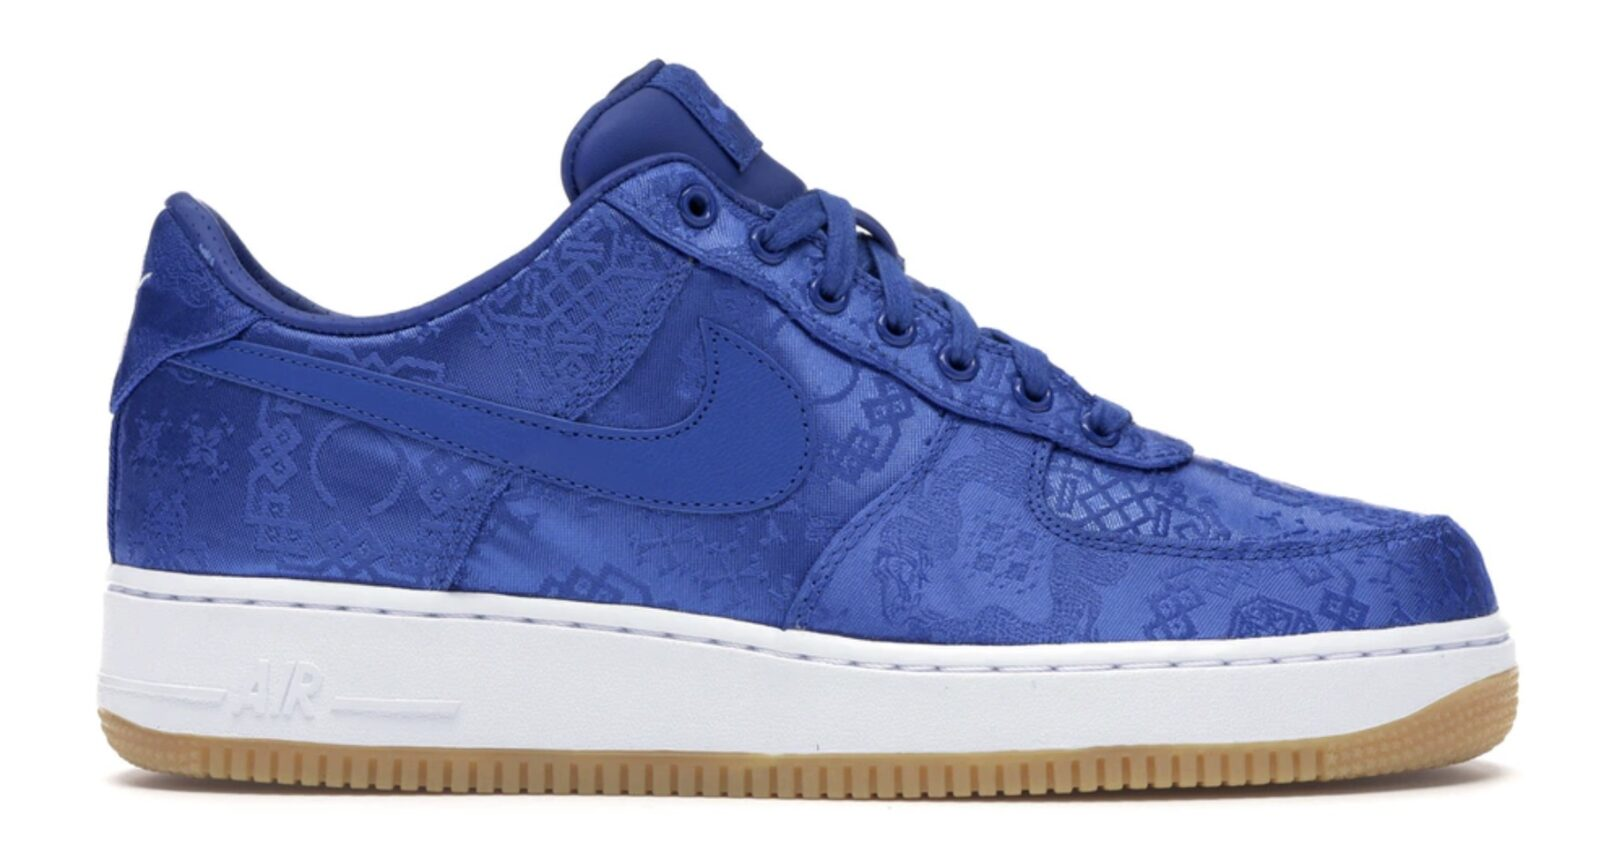 CLOT x Nike Air Force 1 Low Blue Silk |